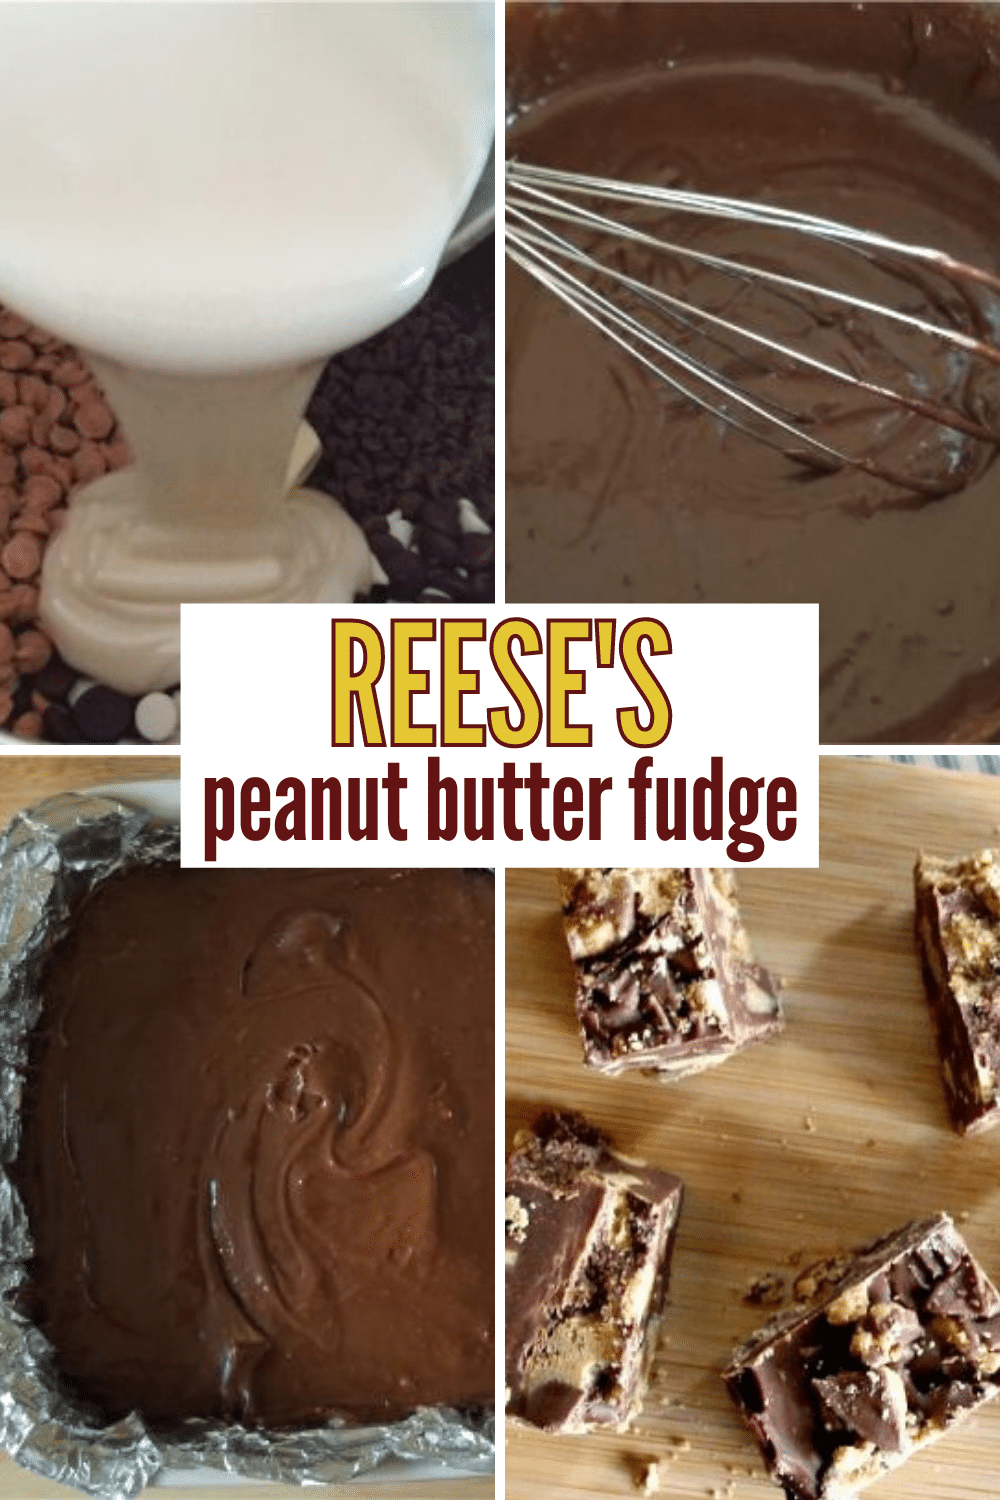 Reese's Peanut Butter Fudge made in the Instant Pot is so easy to make. The result is a rich and delicious fudge your whole family will love. #fudge #reeses #peanutbutter via @wondermomwannab